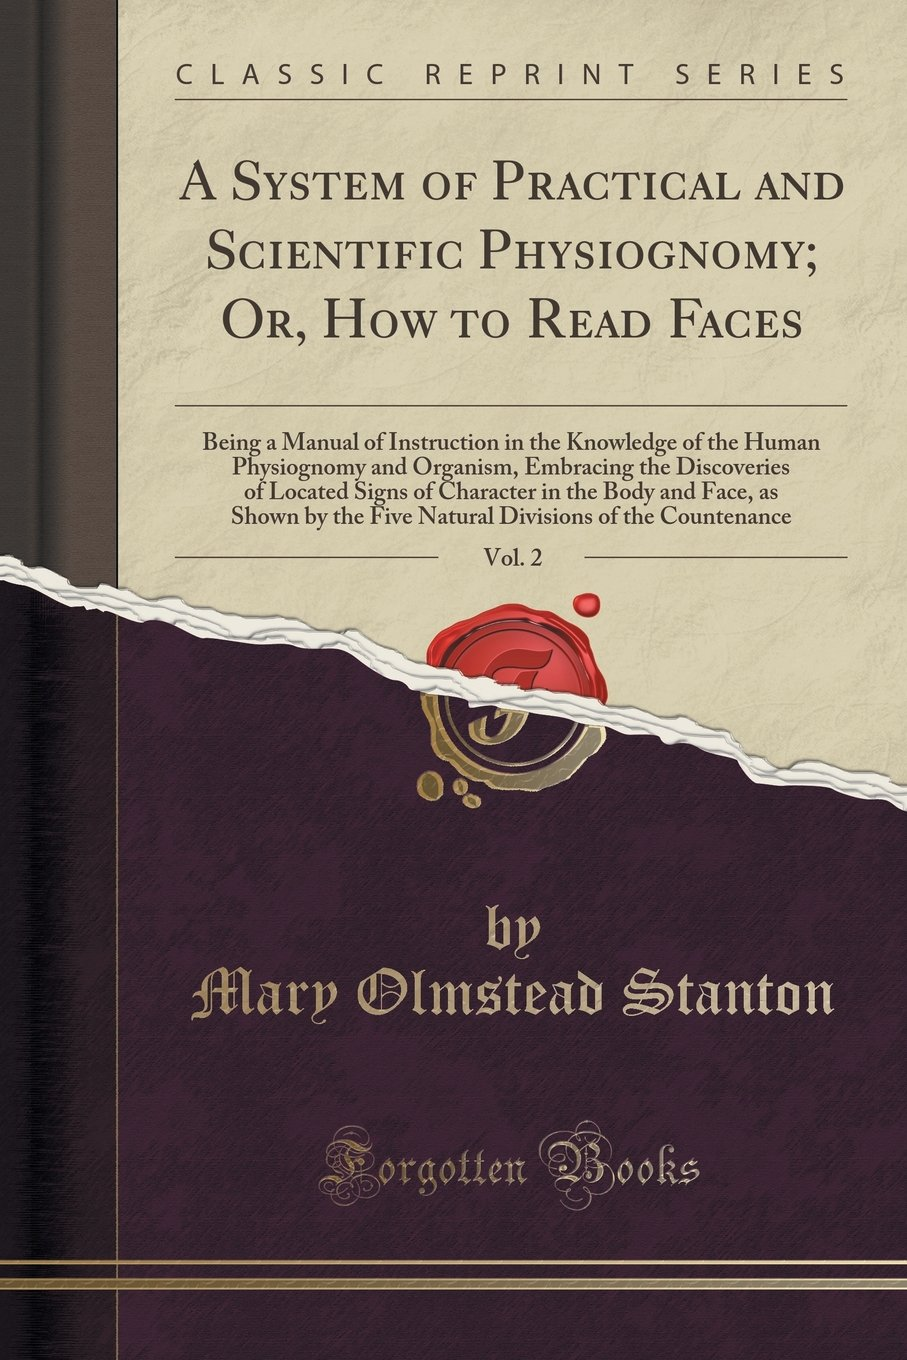 A System of Practical and Scientific Physiognomy; Or, How to Read Faces, Vol. 2: Being a Manual of Instruction in the Knowledge of the Human ... of Character in the Body and Face, as Shown b ebook